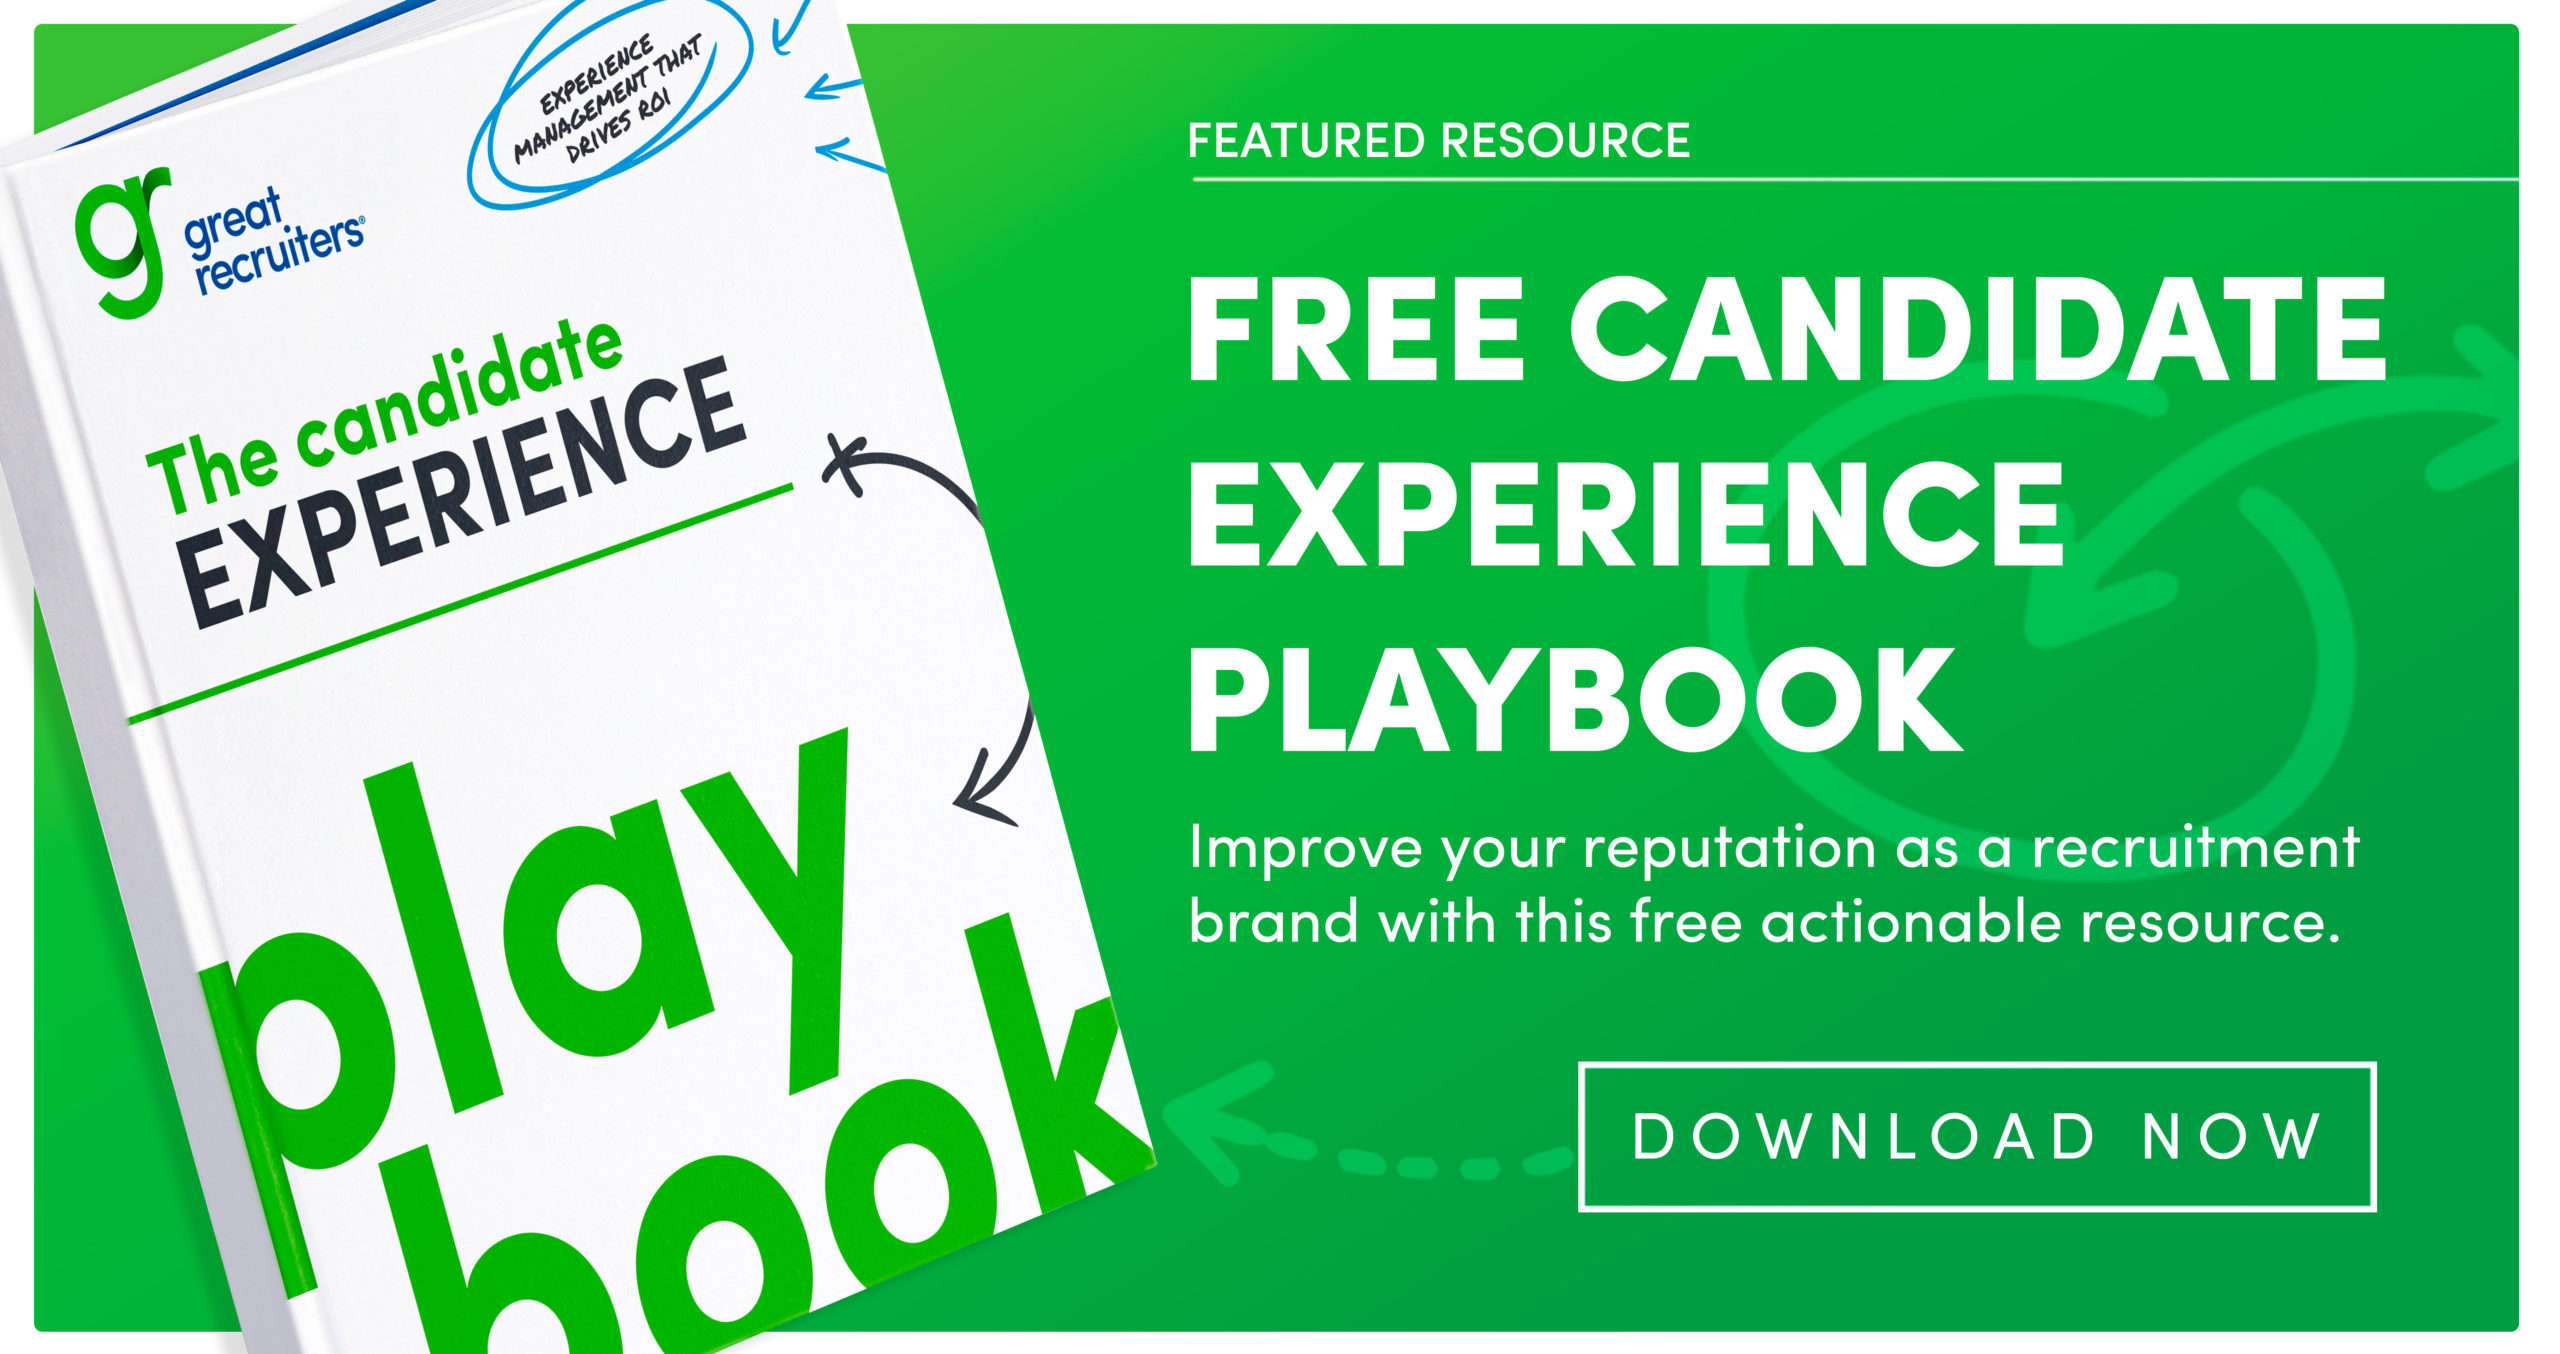 Candidate Experience ROI Playbook